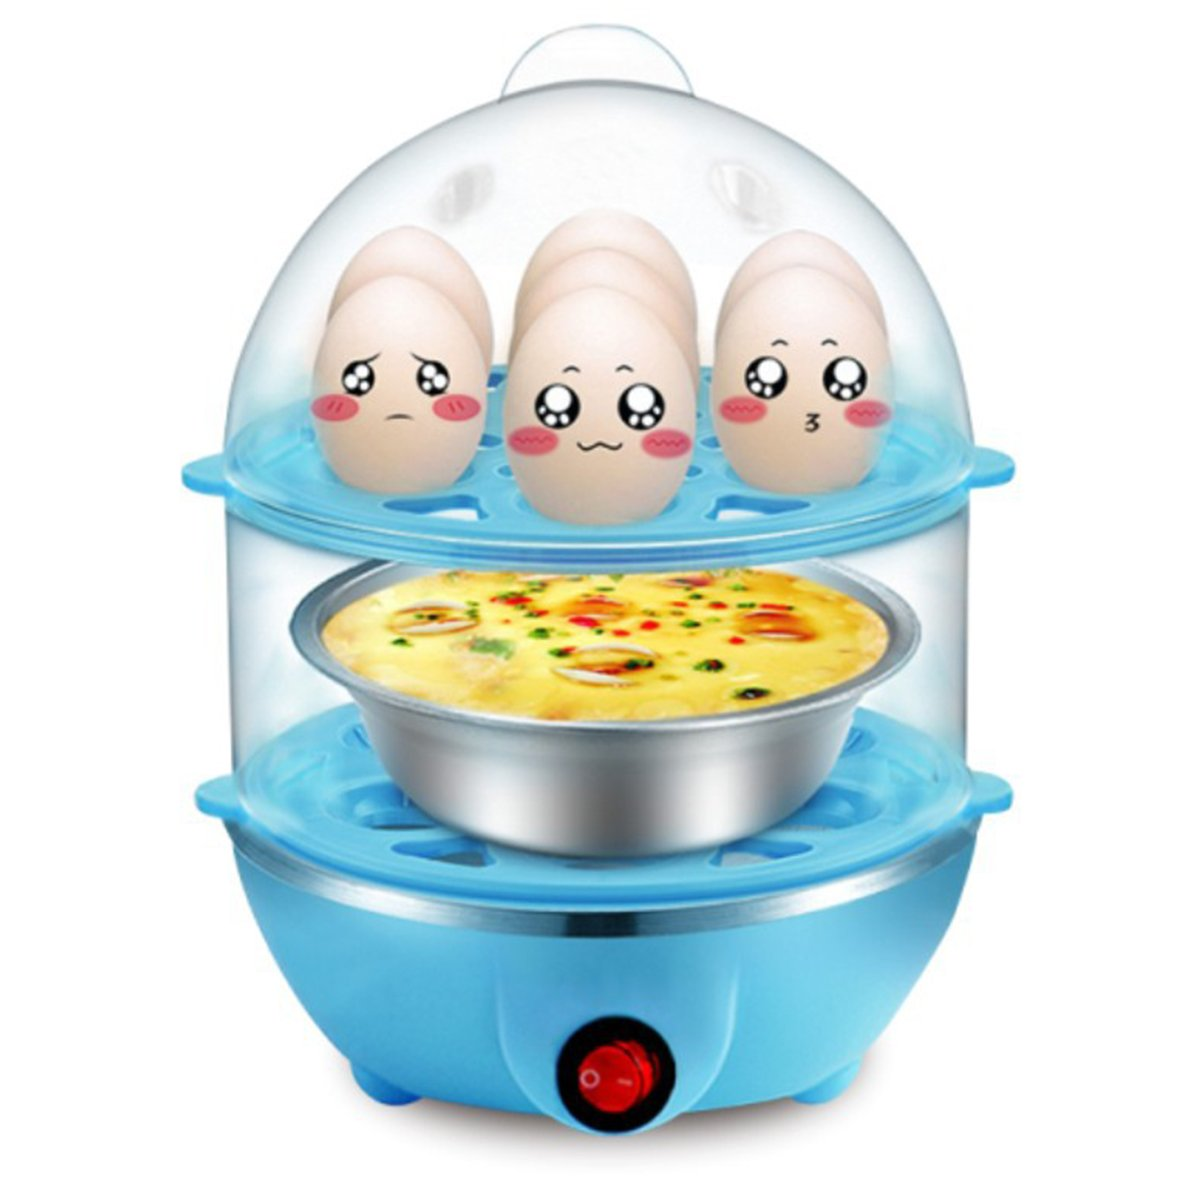 Egg Steamer 14 Egg Double-Layer Lazy Egg Steamer Large-Capacity Electric Boiled Egg Multifunction, Boiled Egg, Heated Milk, Heating, Etc. With Automatic Shutdown Function。 (Bule) DUODEDUO